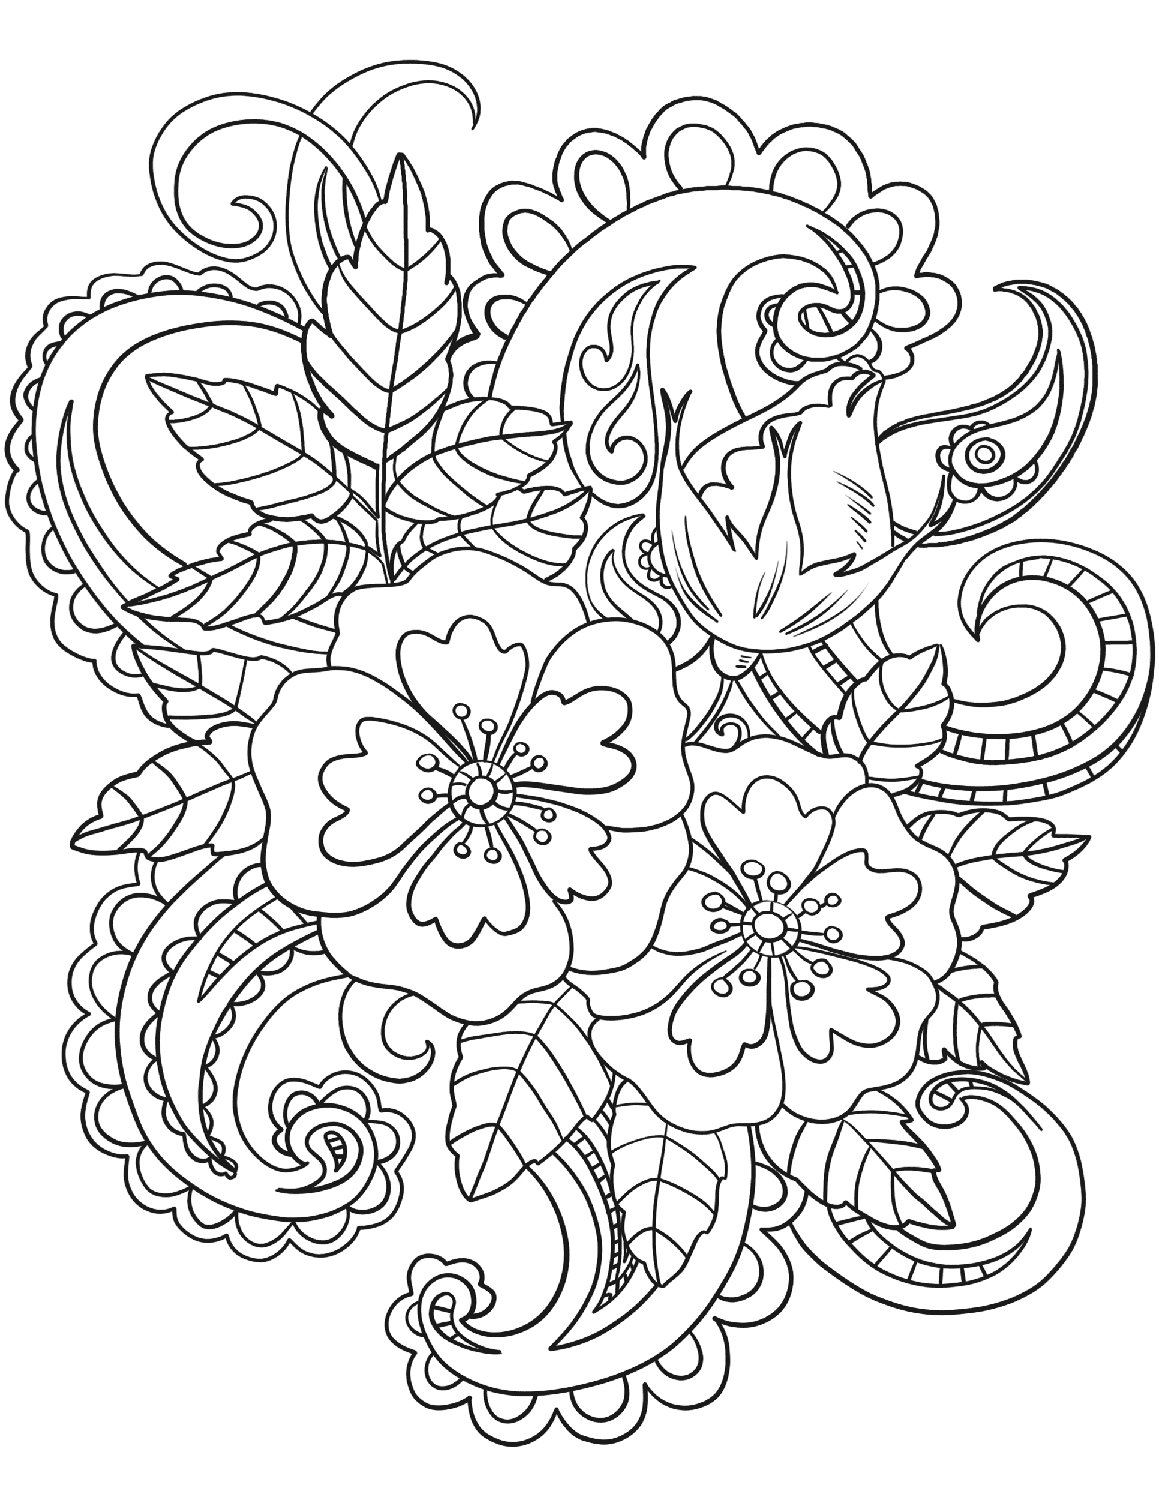 free flower coloring pages for adults fun and pretty coloring pages for adults with flowers and flower coloring pages for free adults